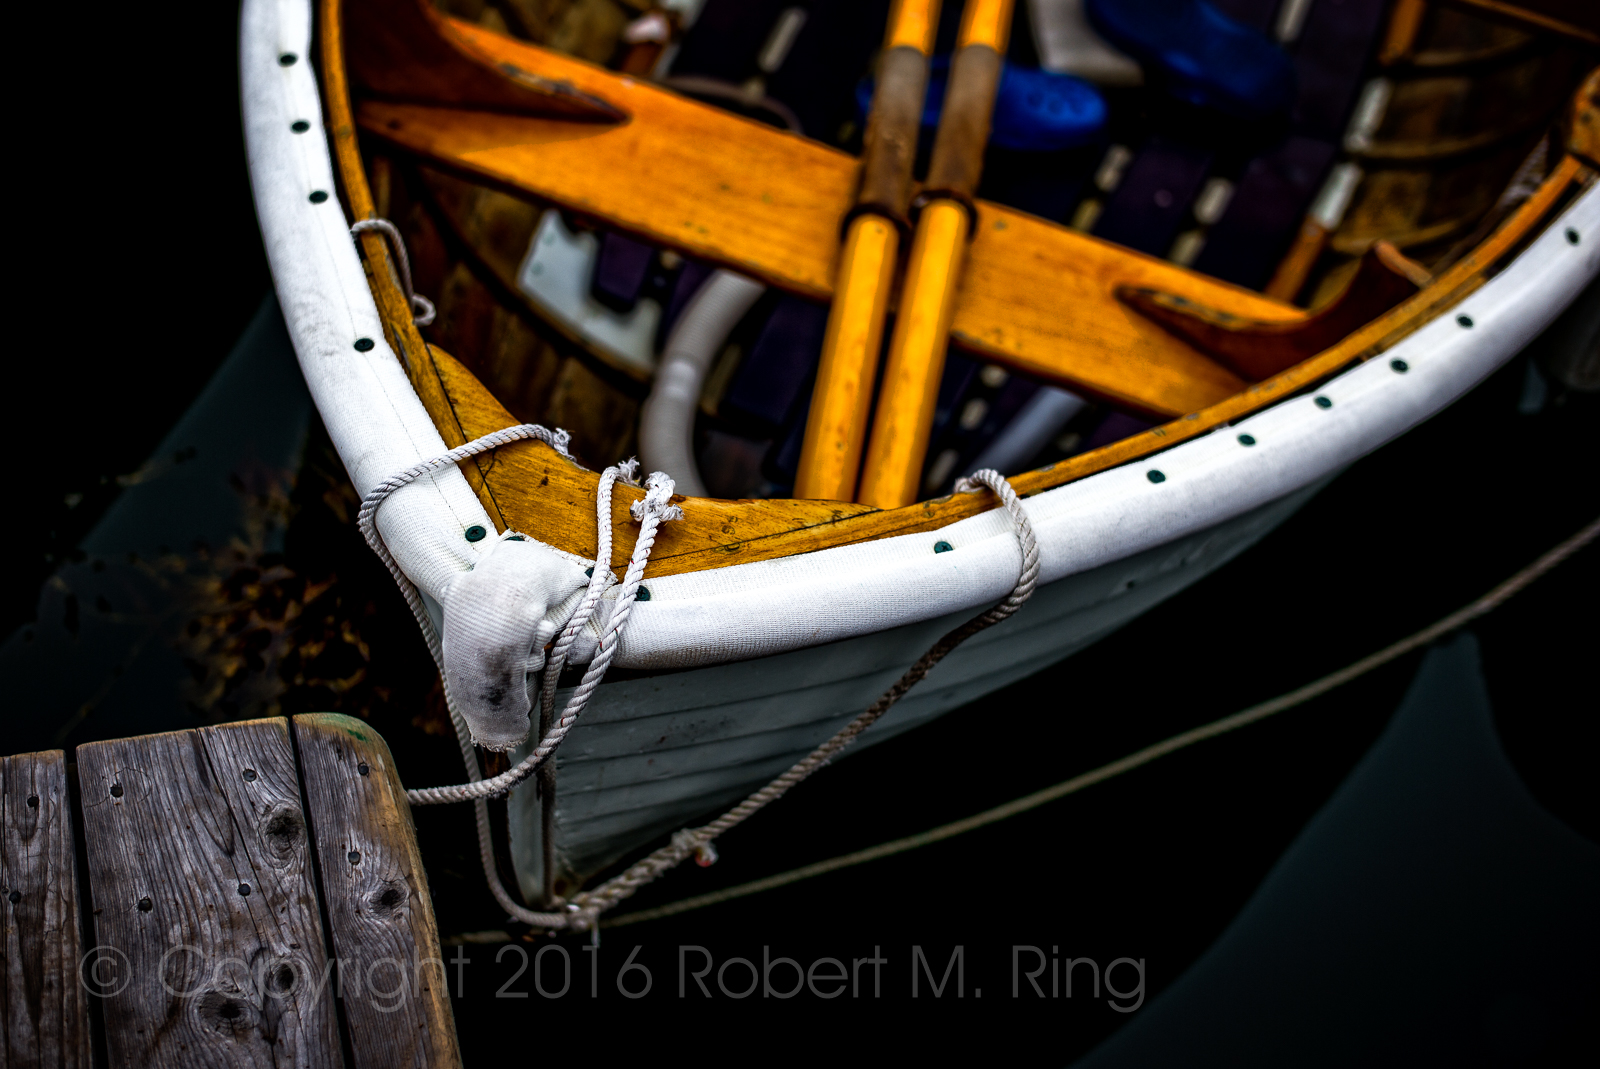 I really enjoy photographing dinghys in harbors.